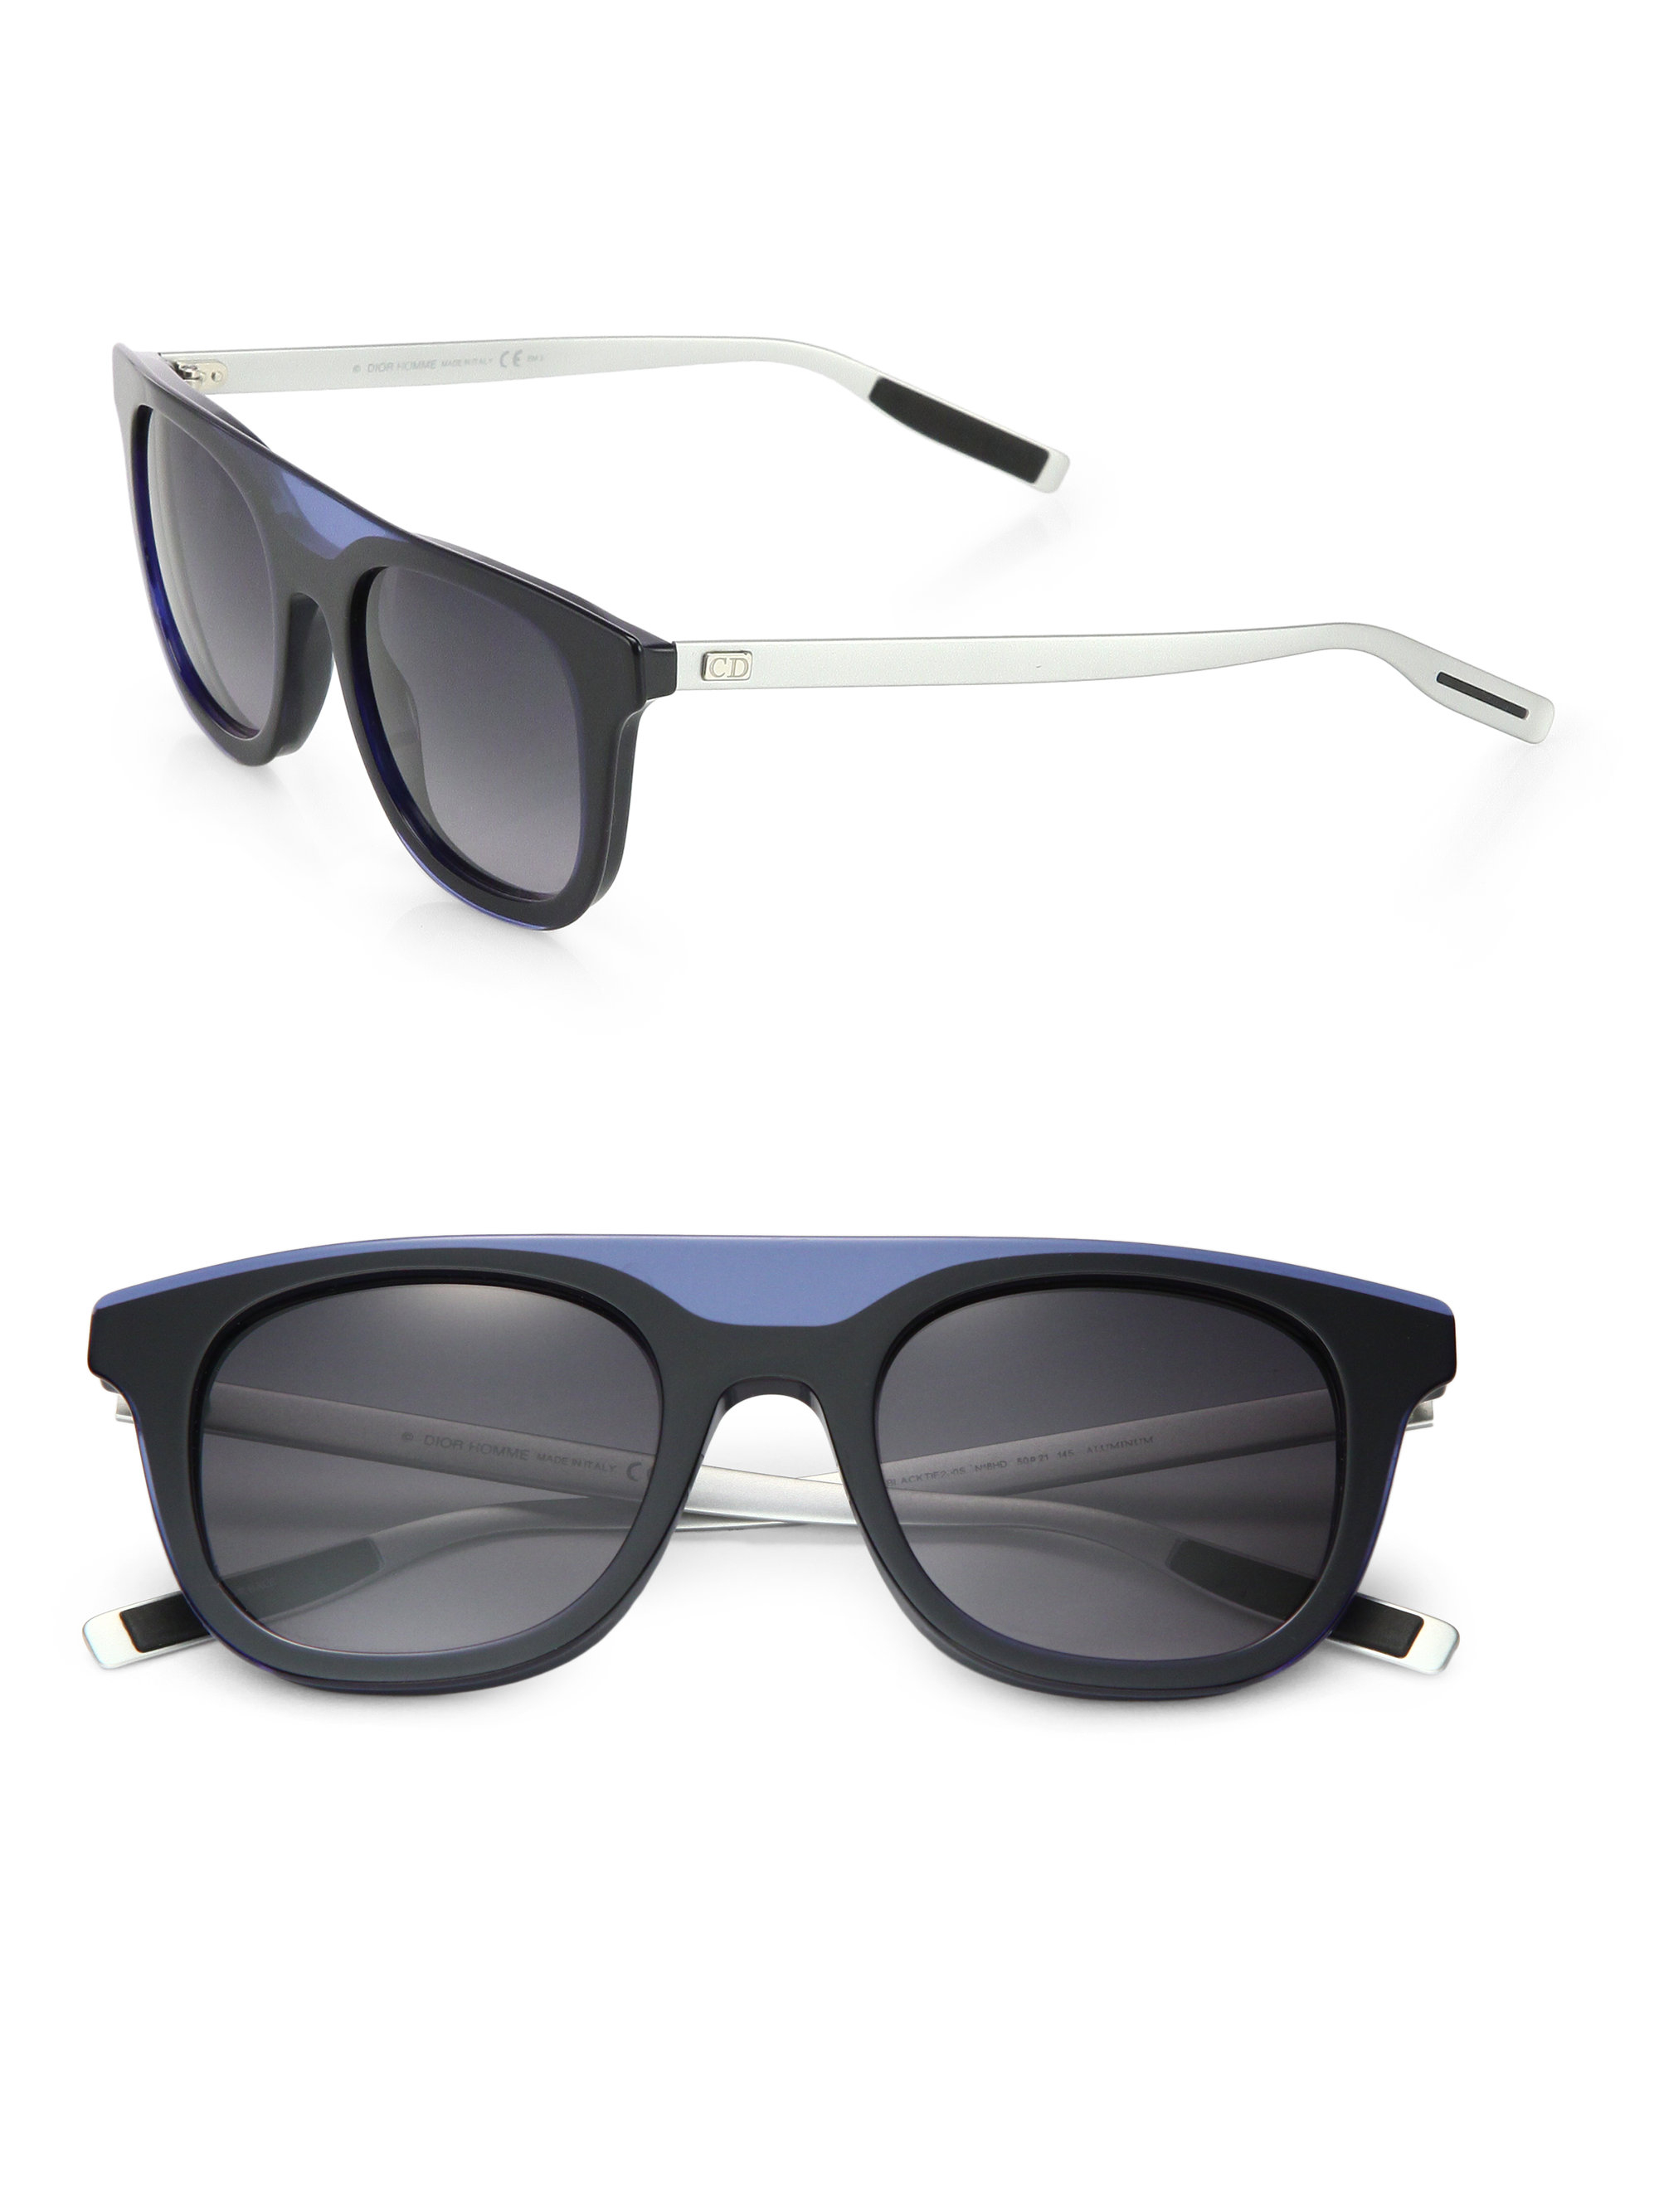 ddc2500fe0d6 Dior Sunglasses Black And Red